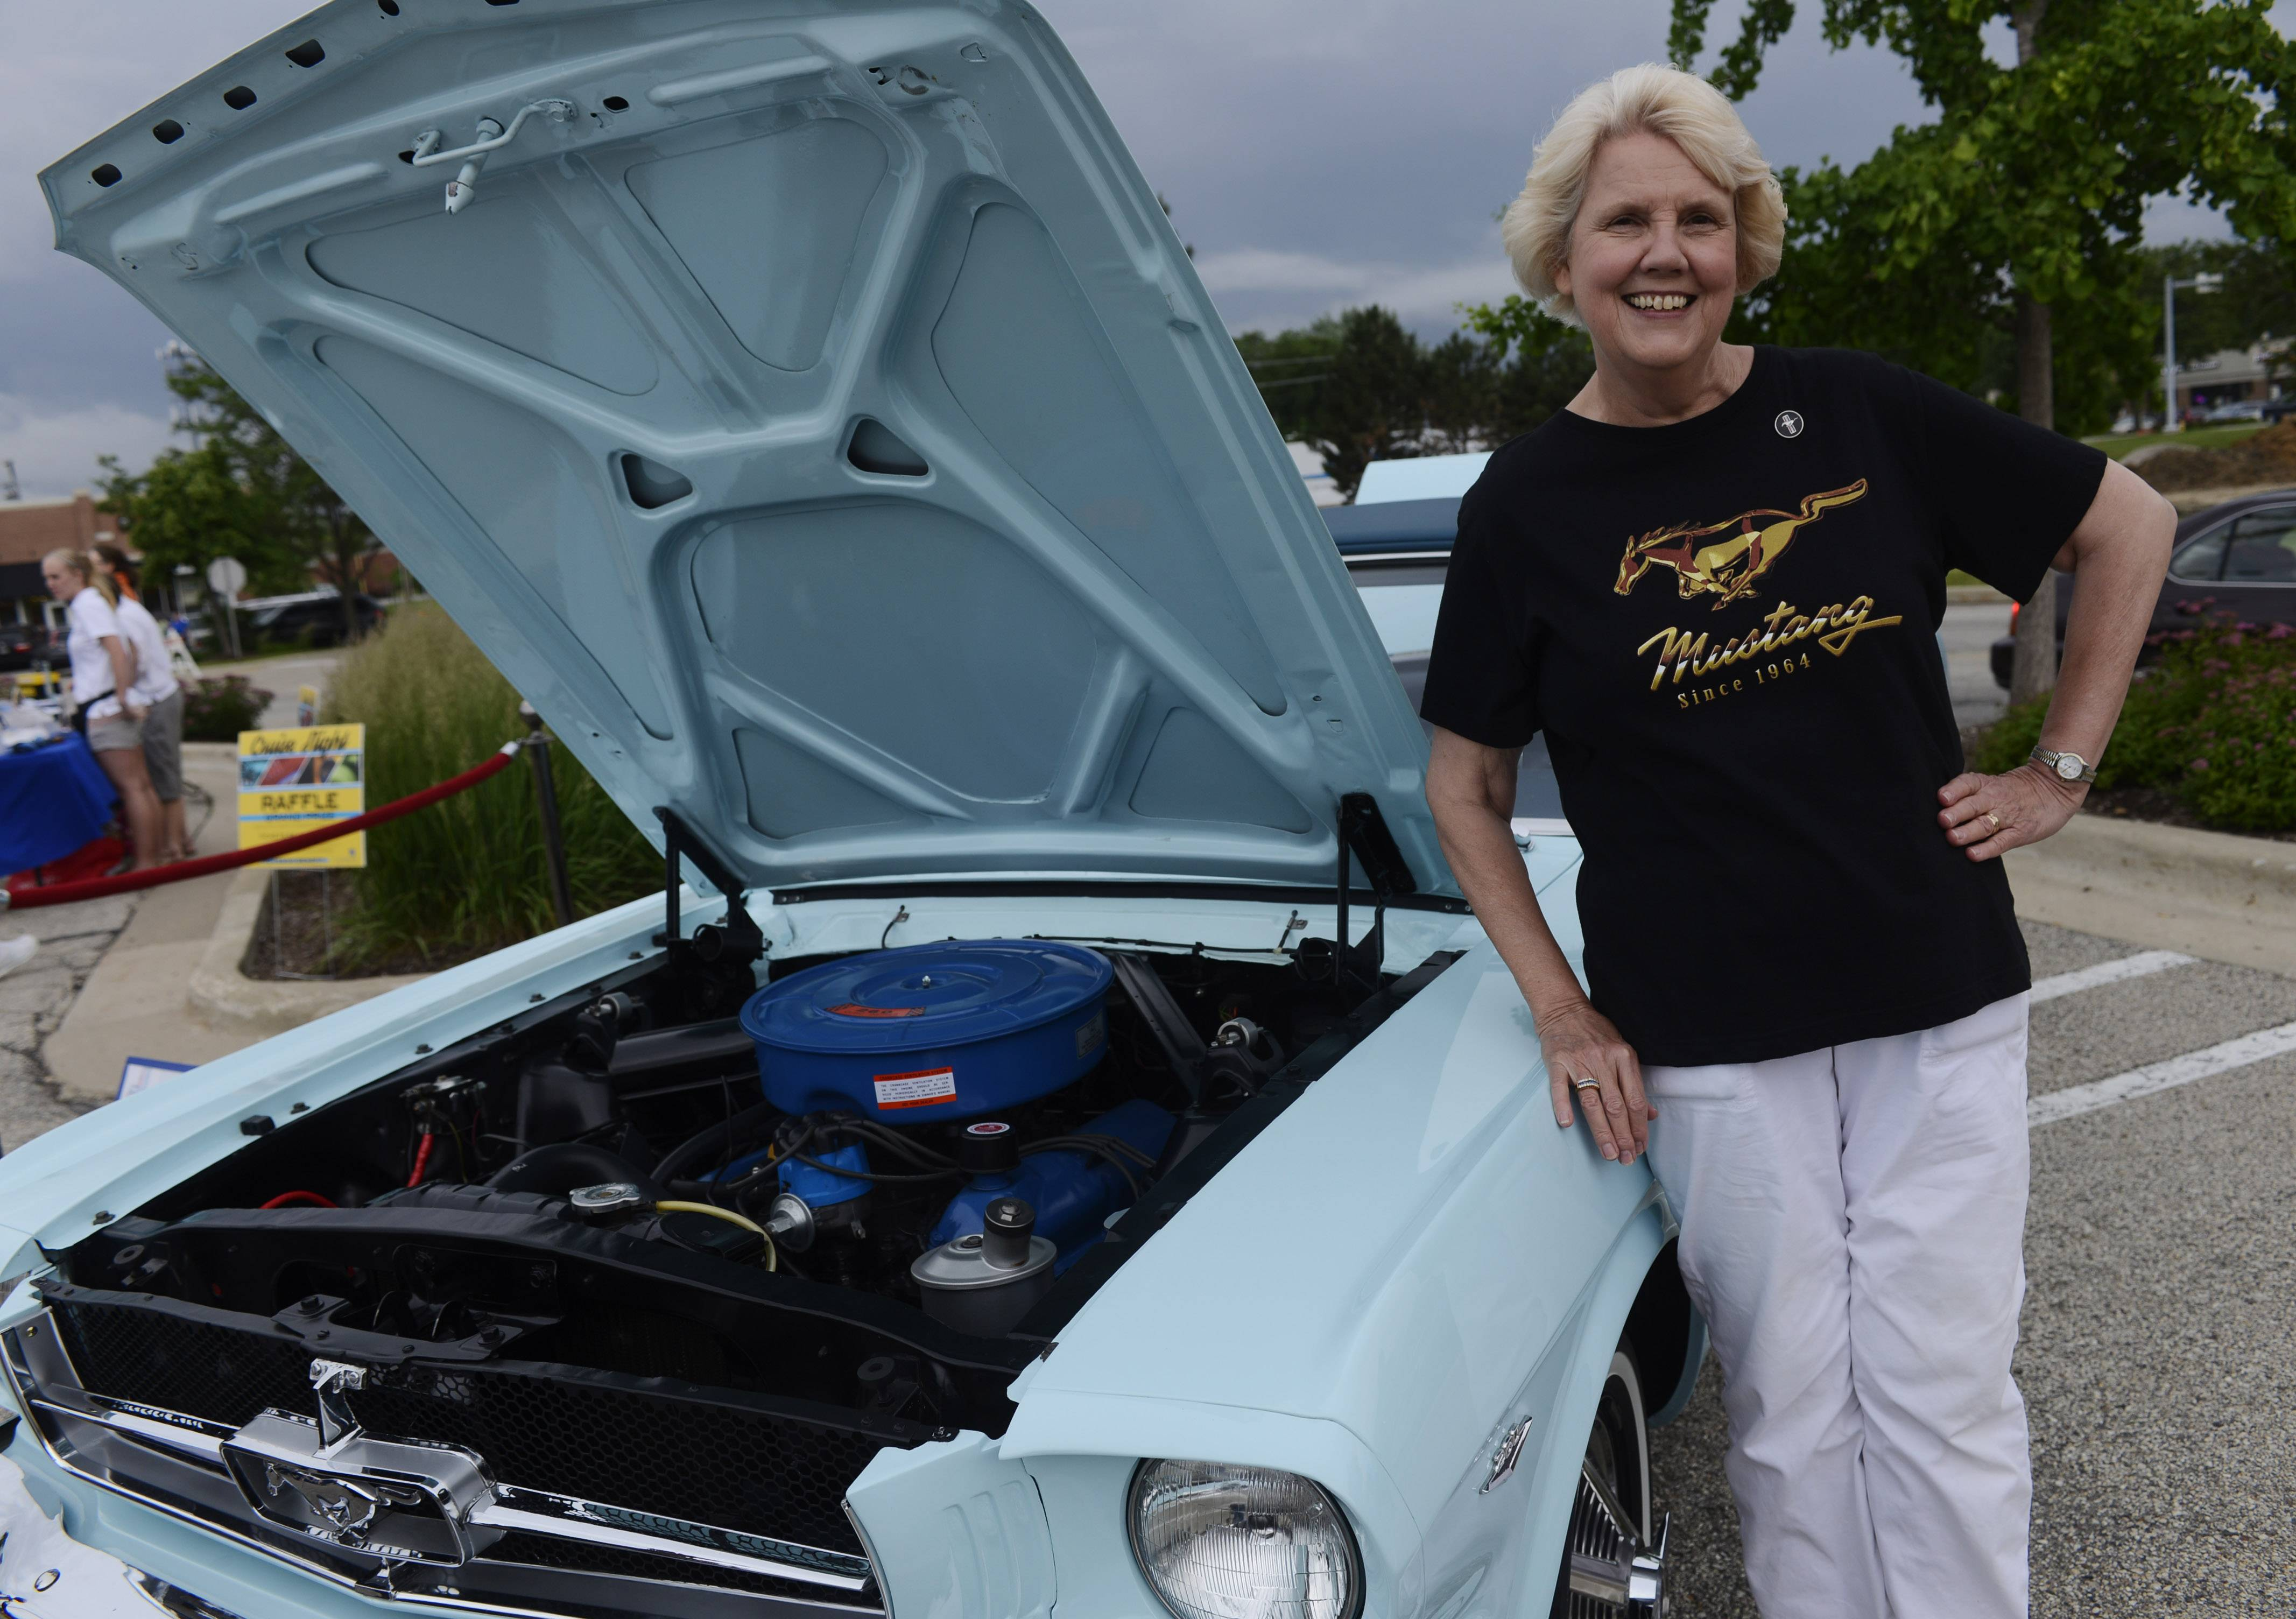 Gail Wise of Park Ridge stands with her historic 1964 1/2 Ford Mustang, which is the earliest such car known to be sold. Her famous car was one of those featured at the inaugural Cruise Night at Randhurst Village in Mount Prospect.